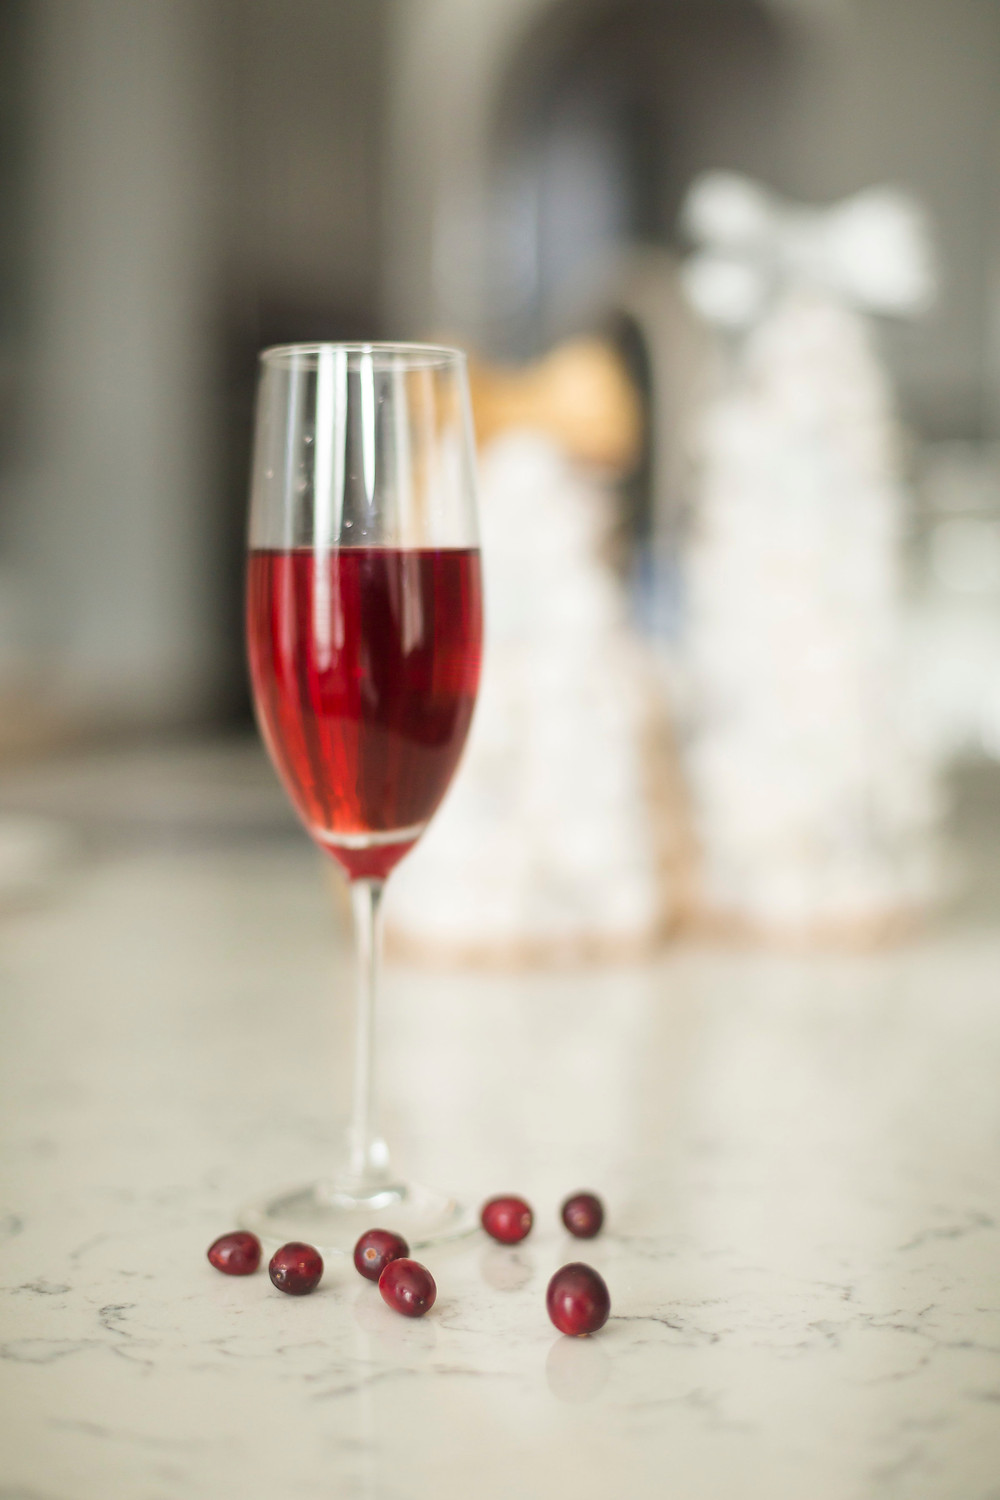 The Poinsettia Christmas Drink